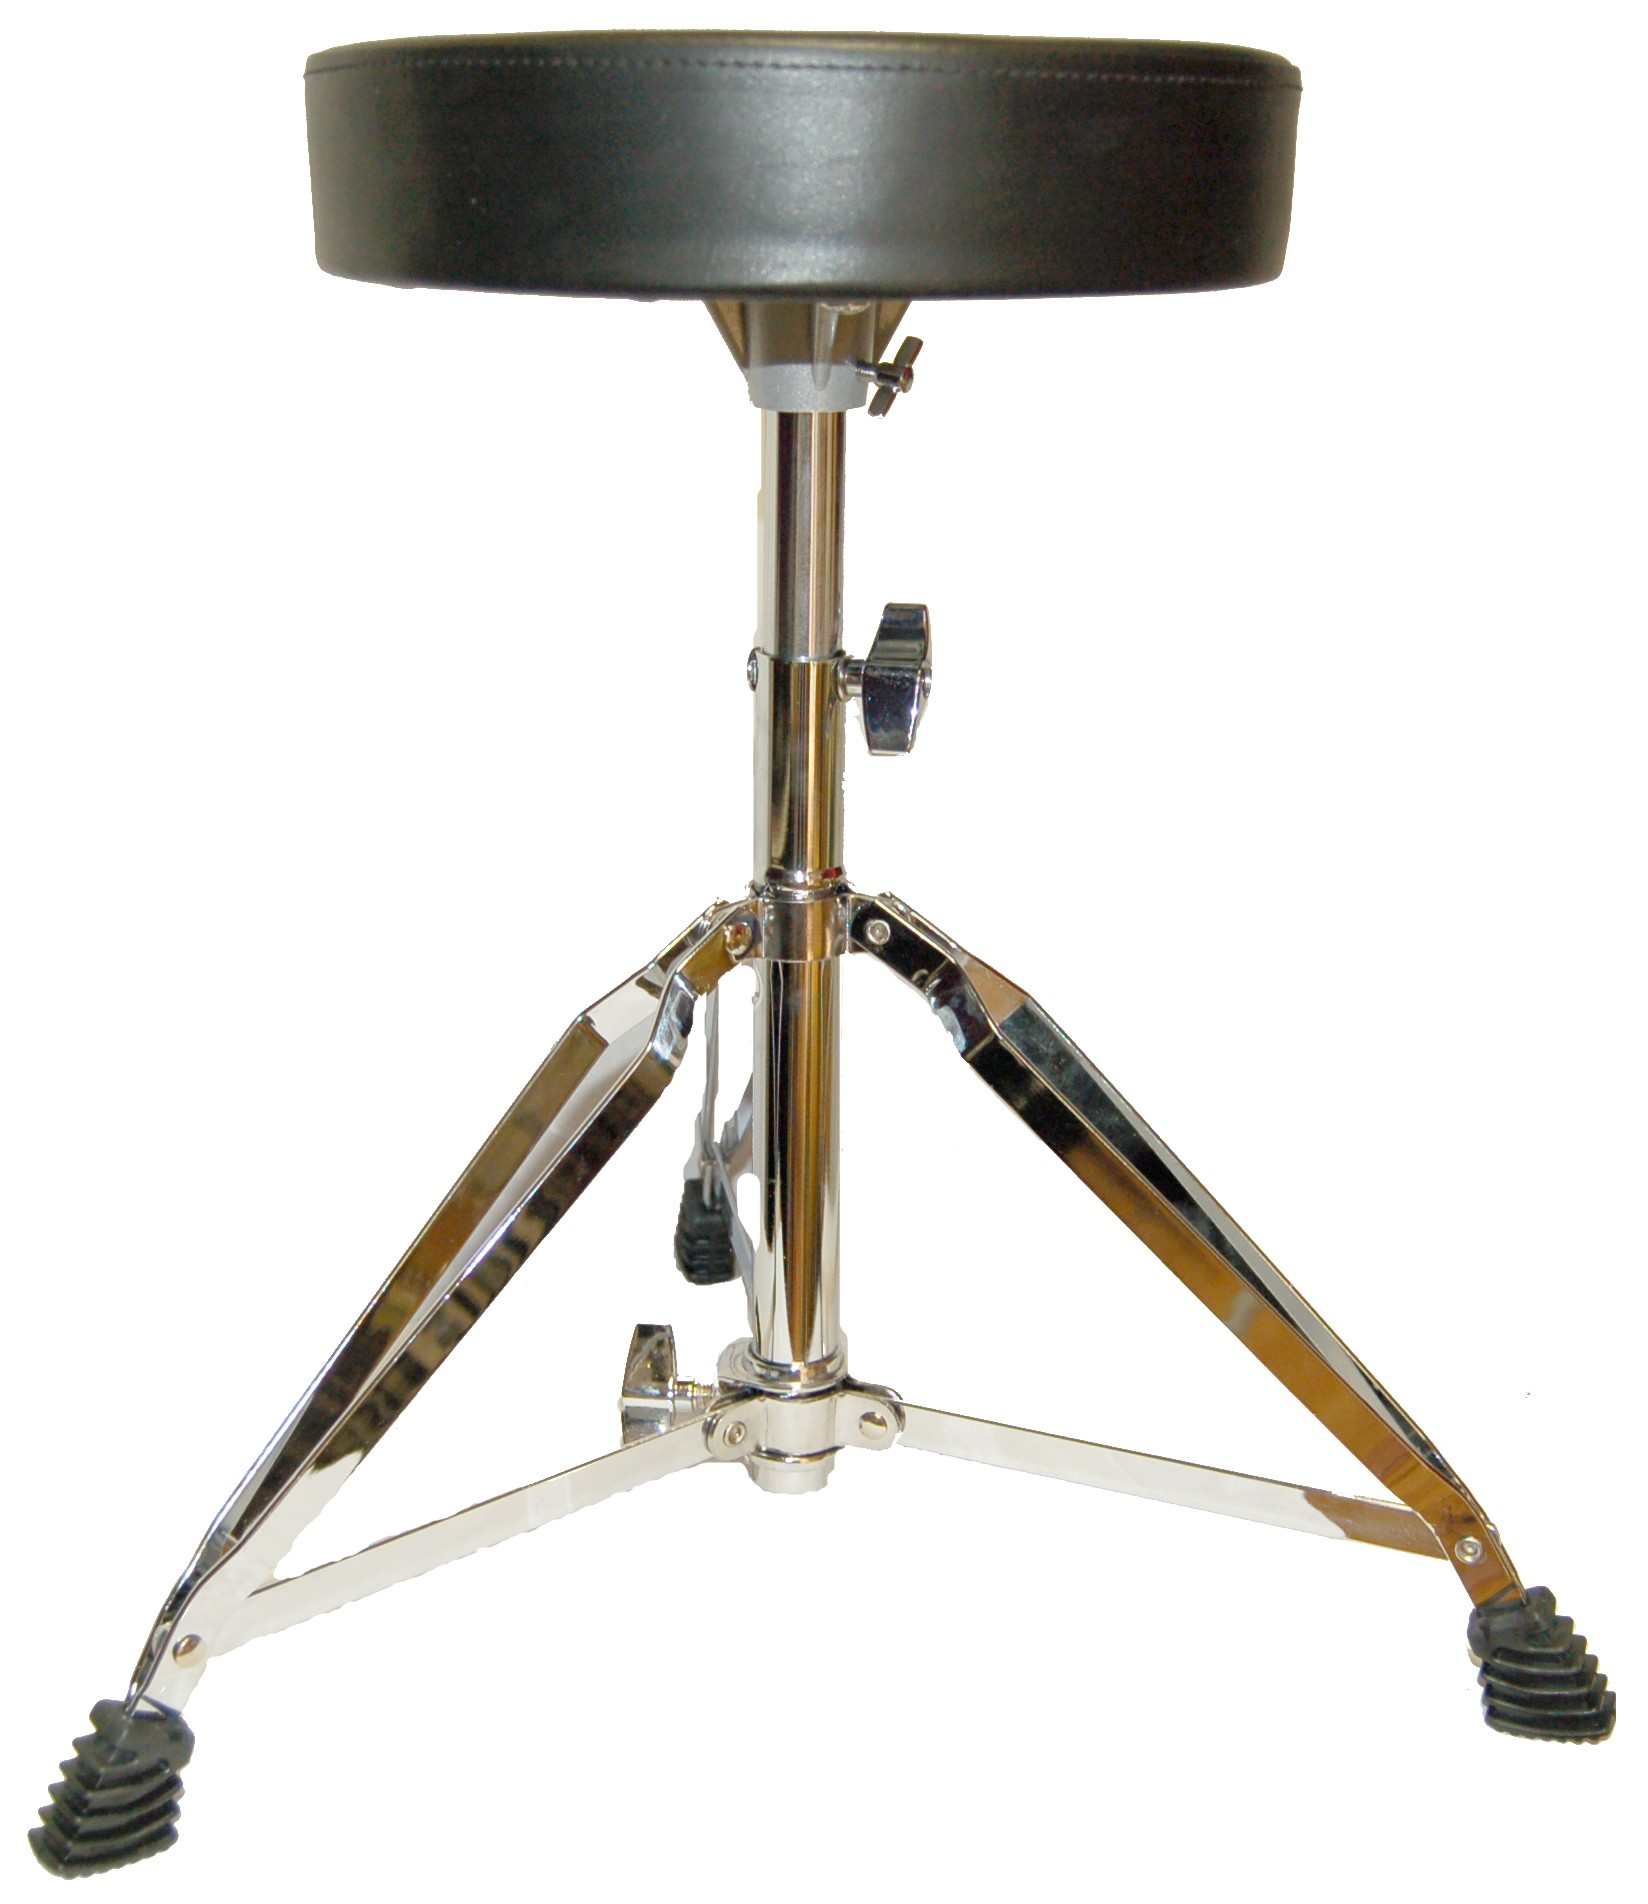 VIPER ROUND SHAPE DRUM THRONE